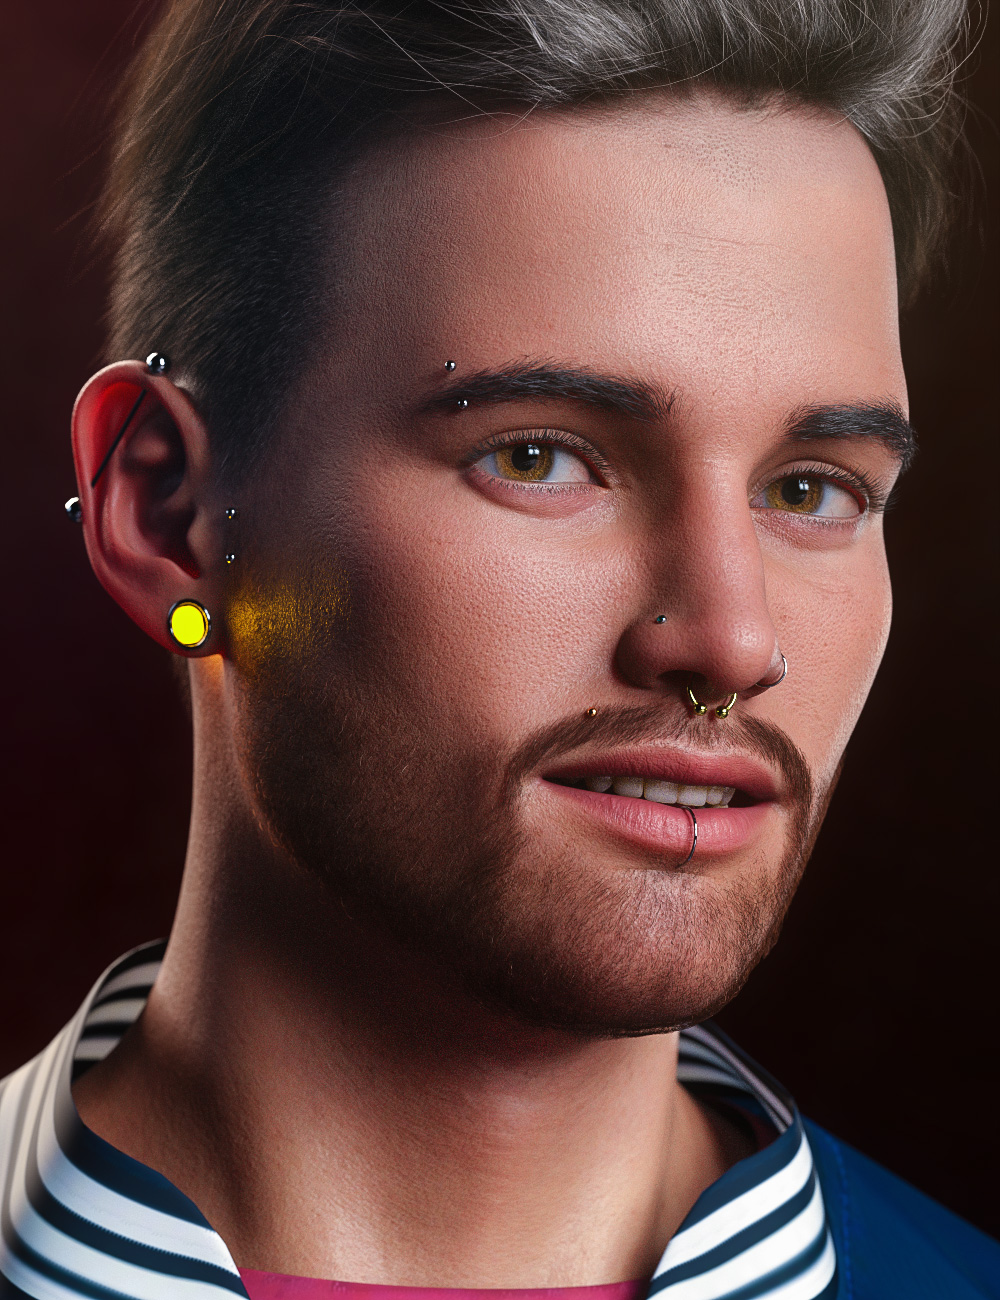 Vario Piercing for Genesis 8.1 Male by: Arki, 3D Models by Daz 3D